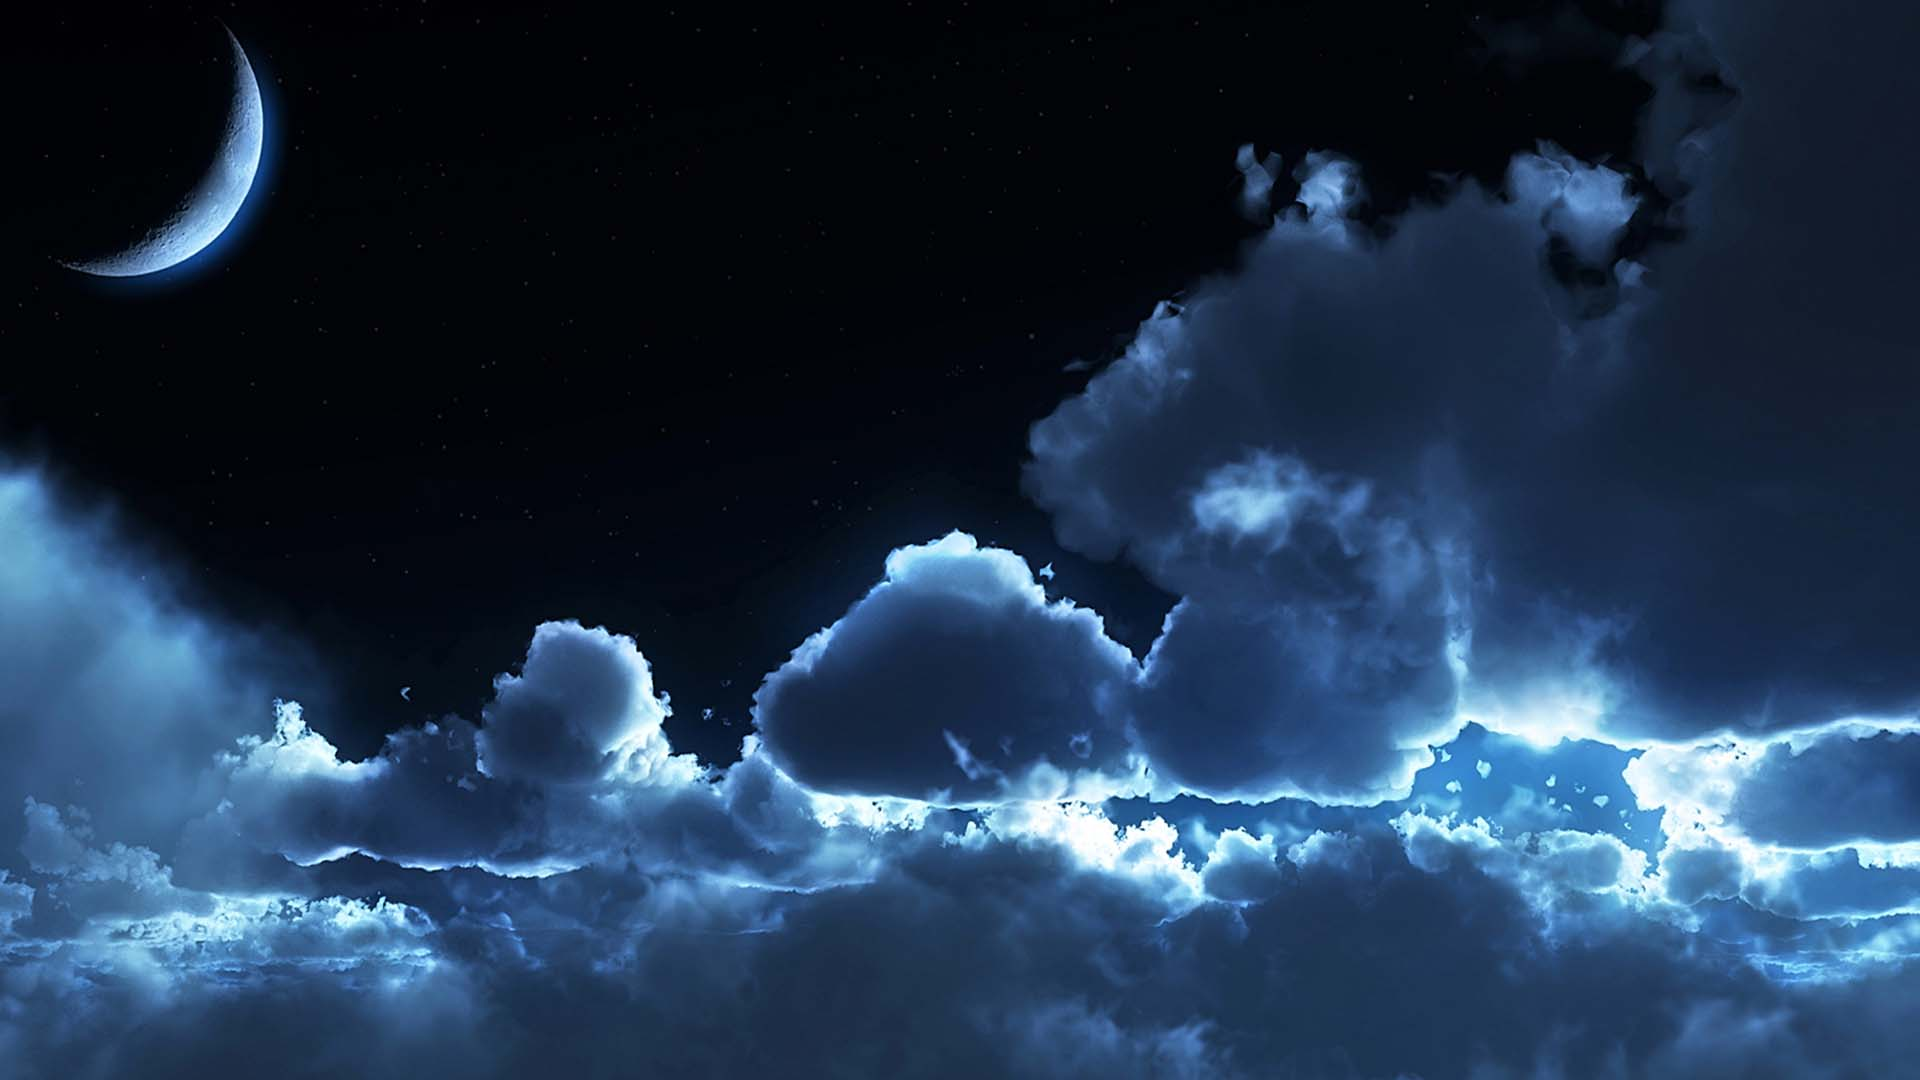 Night sky wallpaper hd